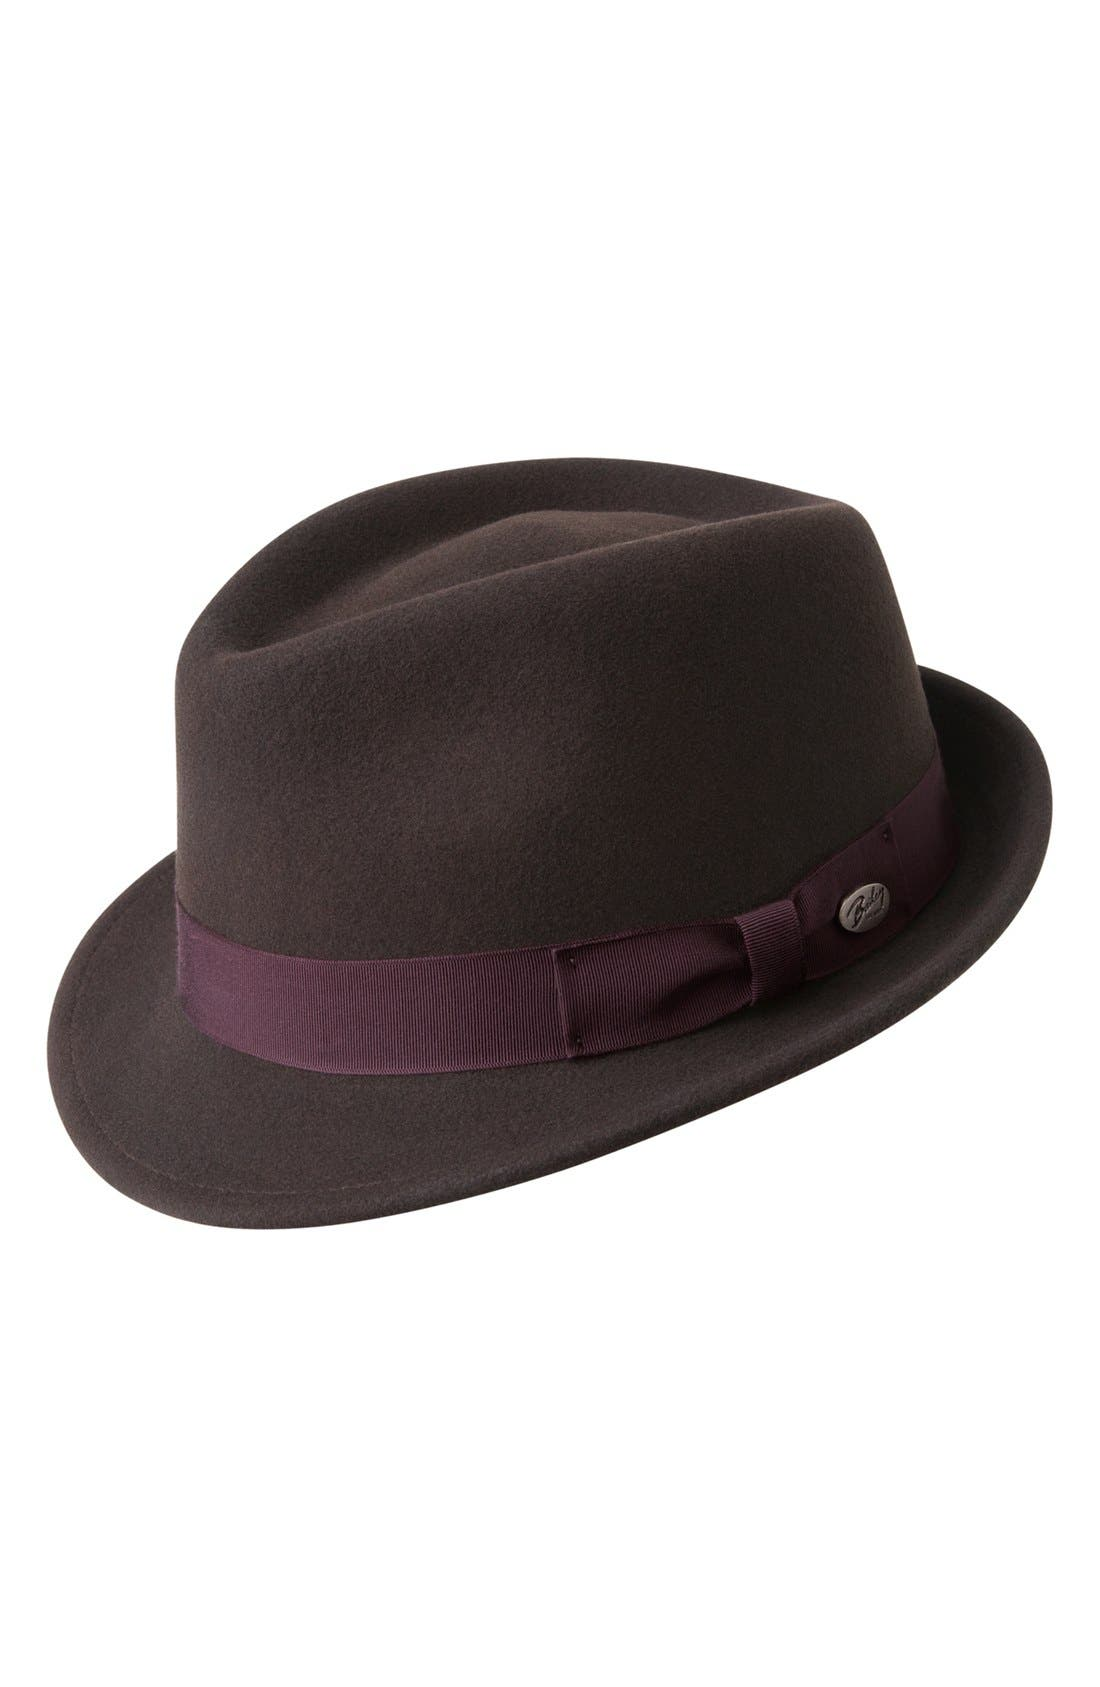 'Wynn' Packable Fedora,                             Main thumbnail 3, color,